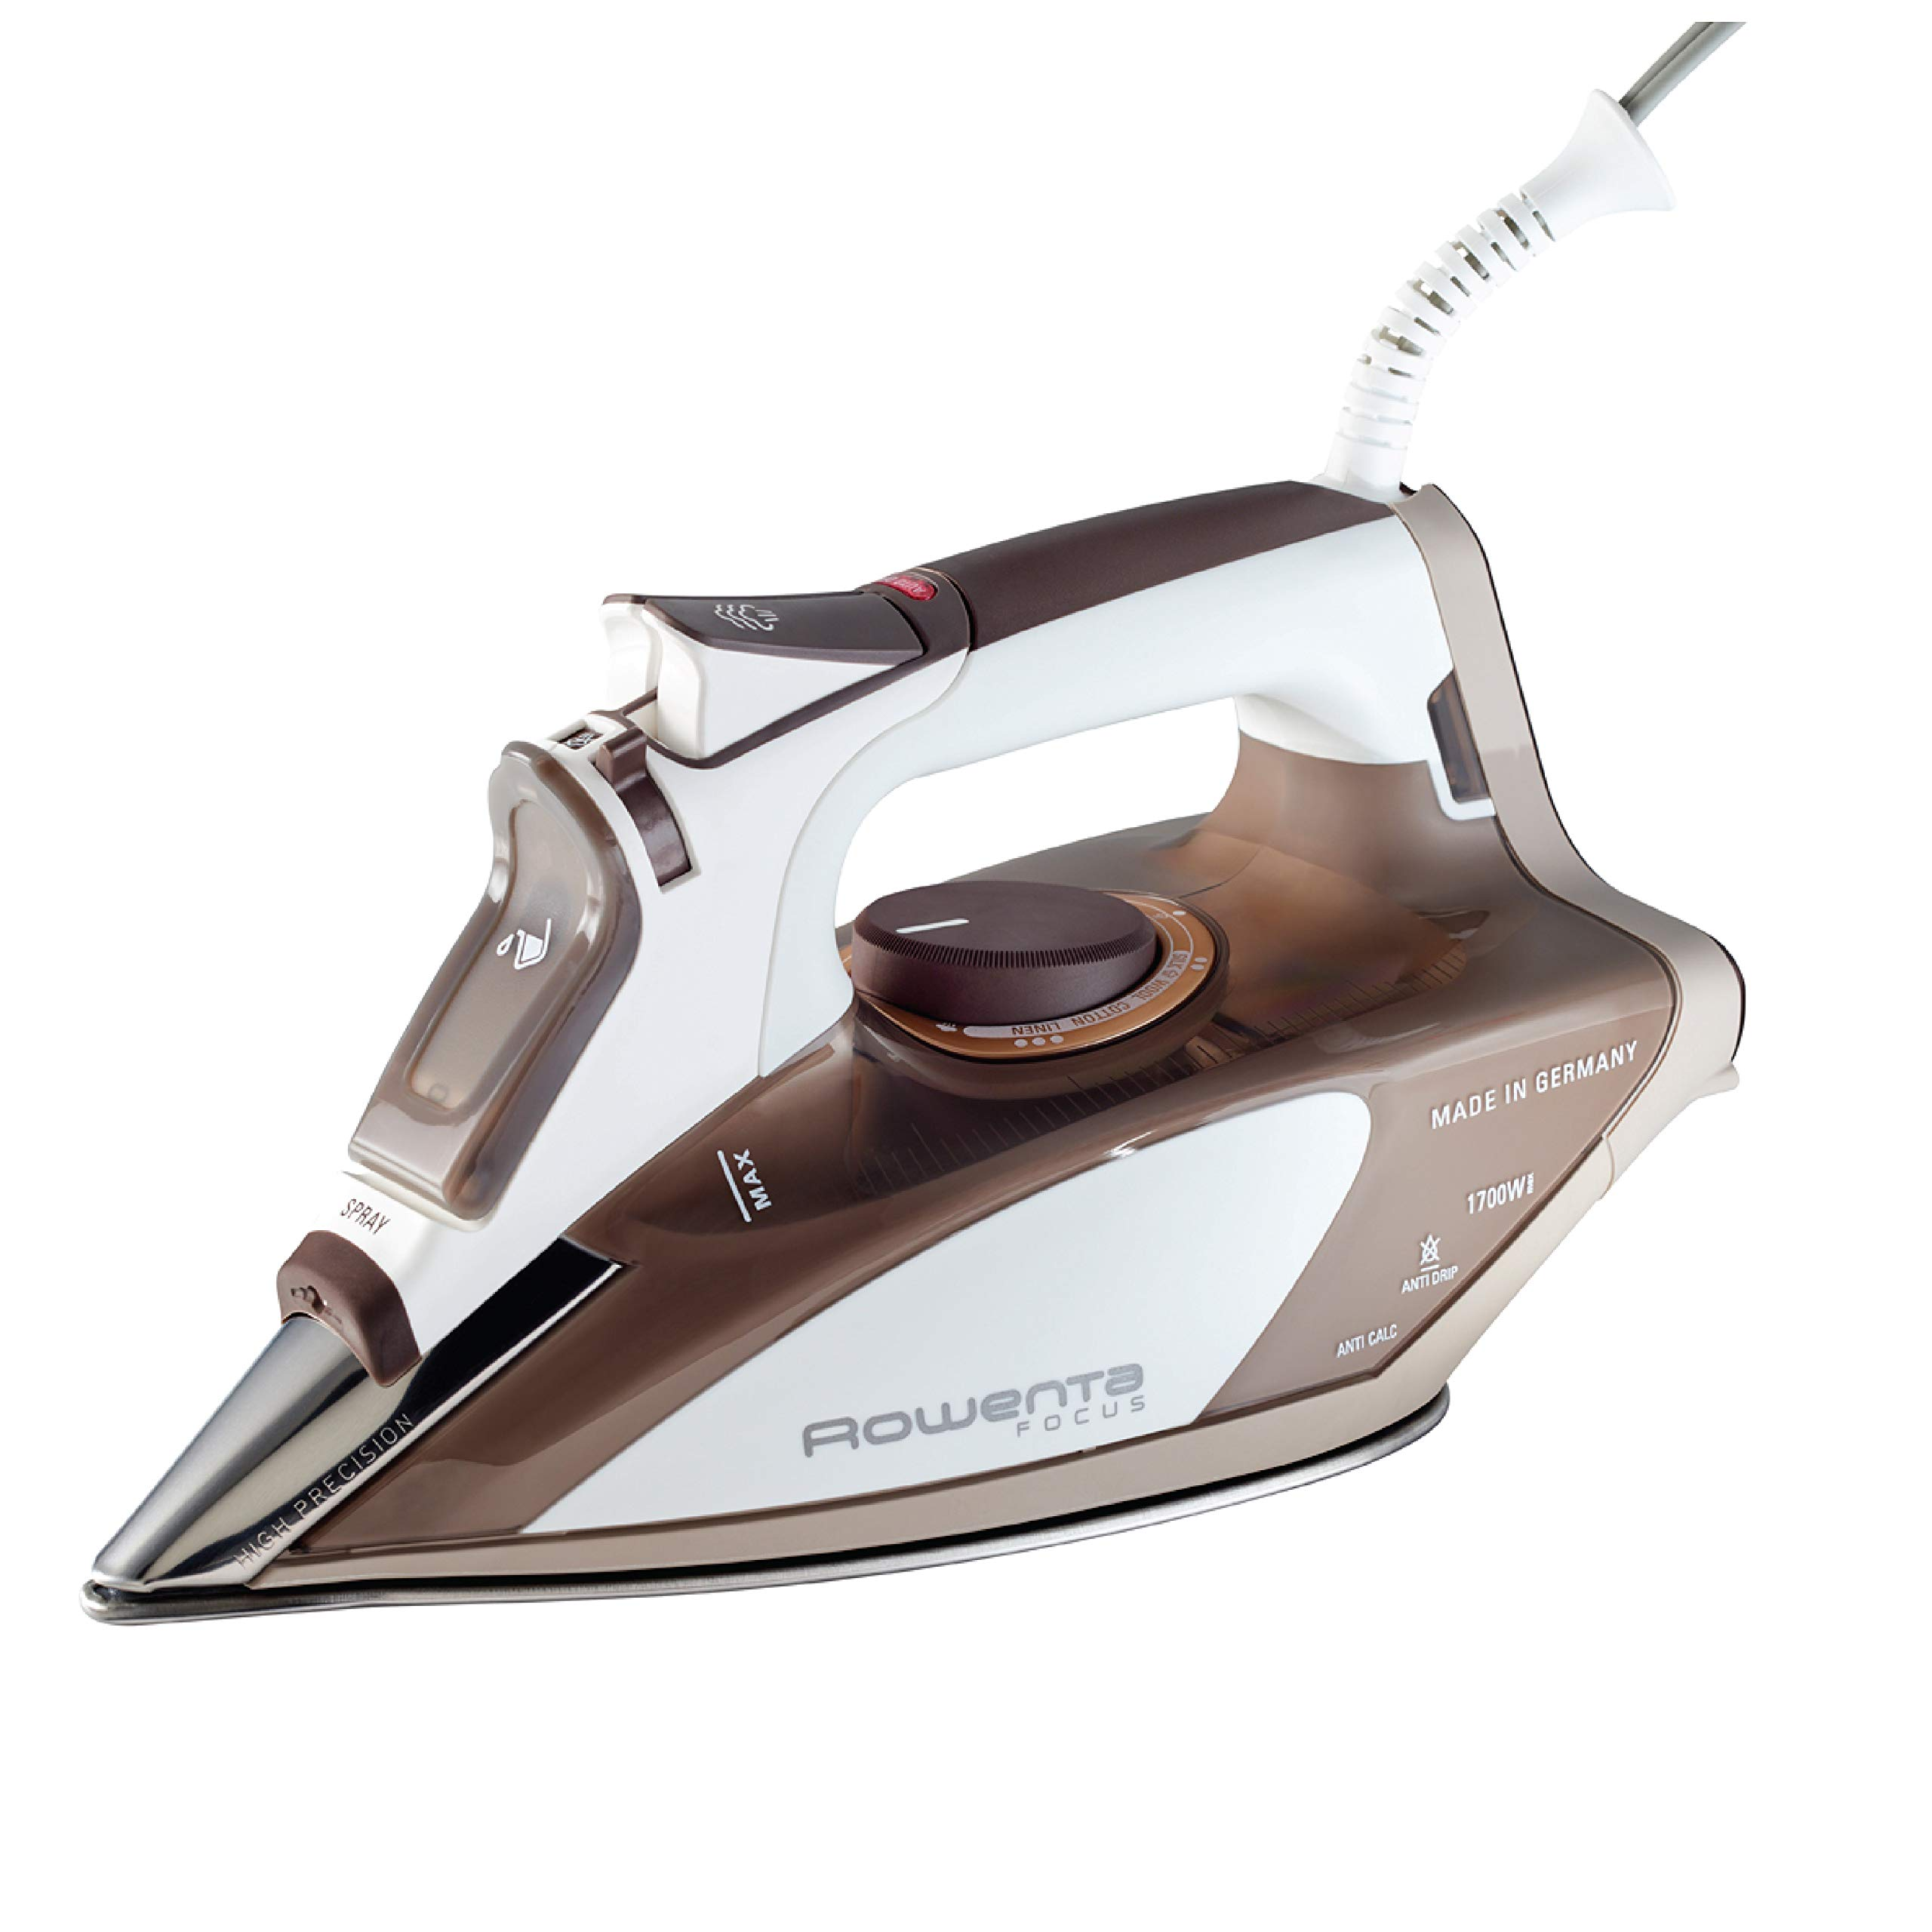 Rowenta DW5080 1700-Watt Micro Steam Iron Stainless Steel Soleplate with Auto-Off, 400-Hole, Brown by Rowenta